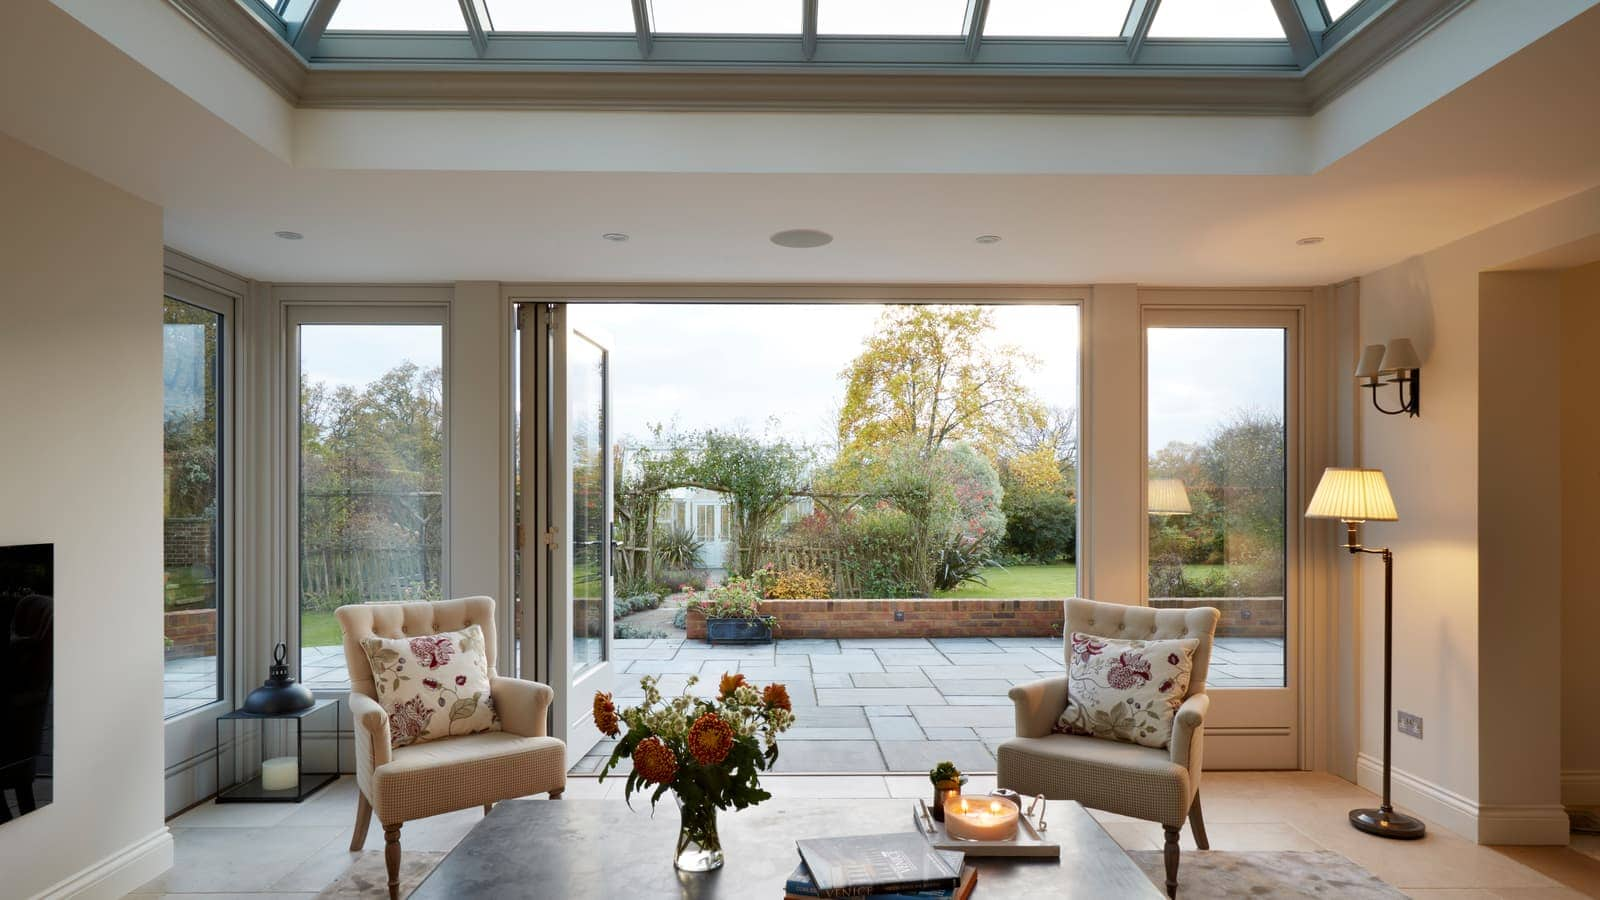 Cosy Orangery with a Fireplace